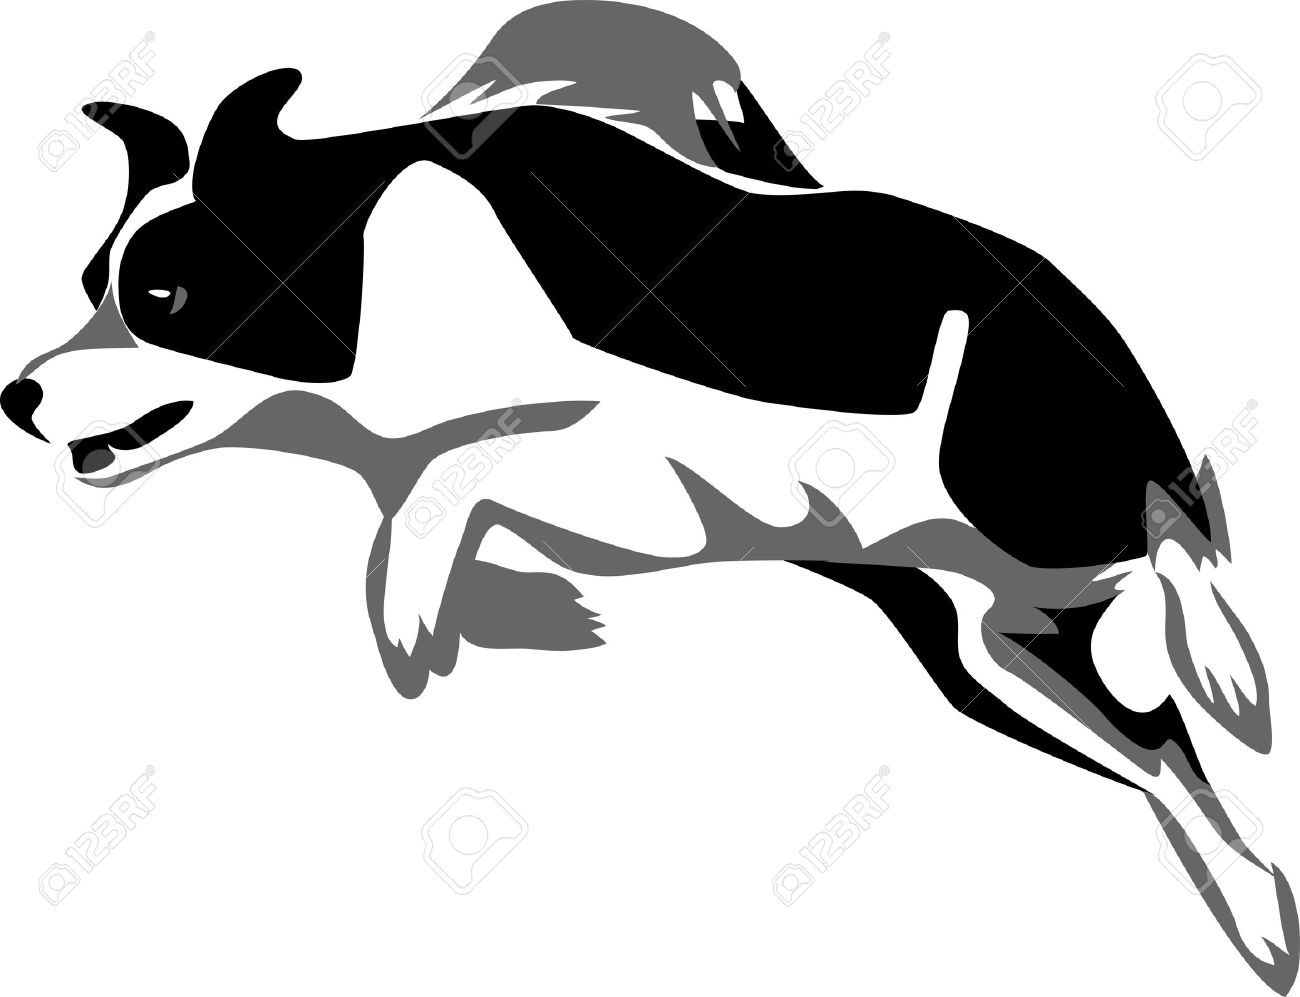 4,457 Agility Stock Vector Illustration And Royalty Free Agility Clipart.